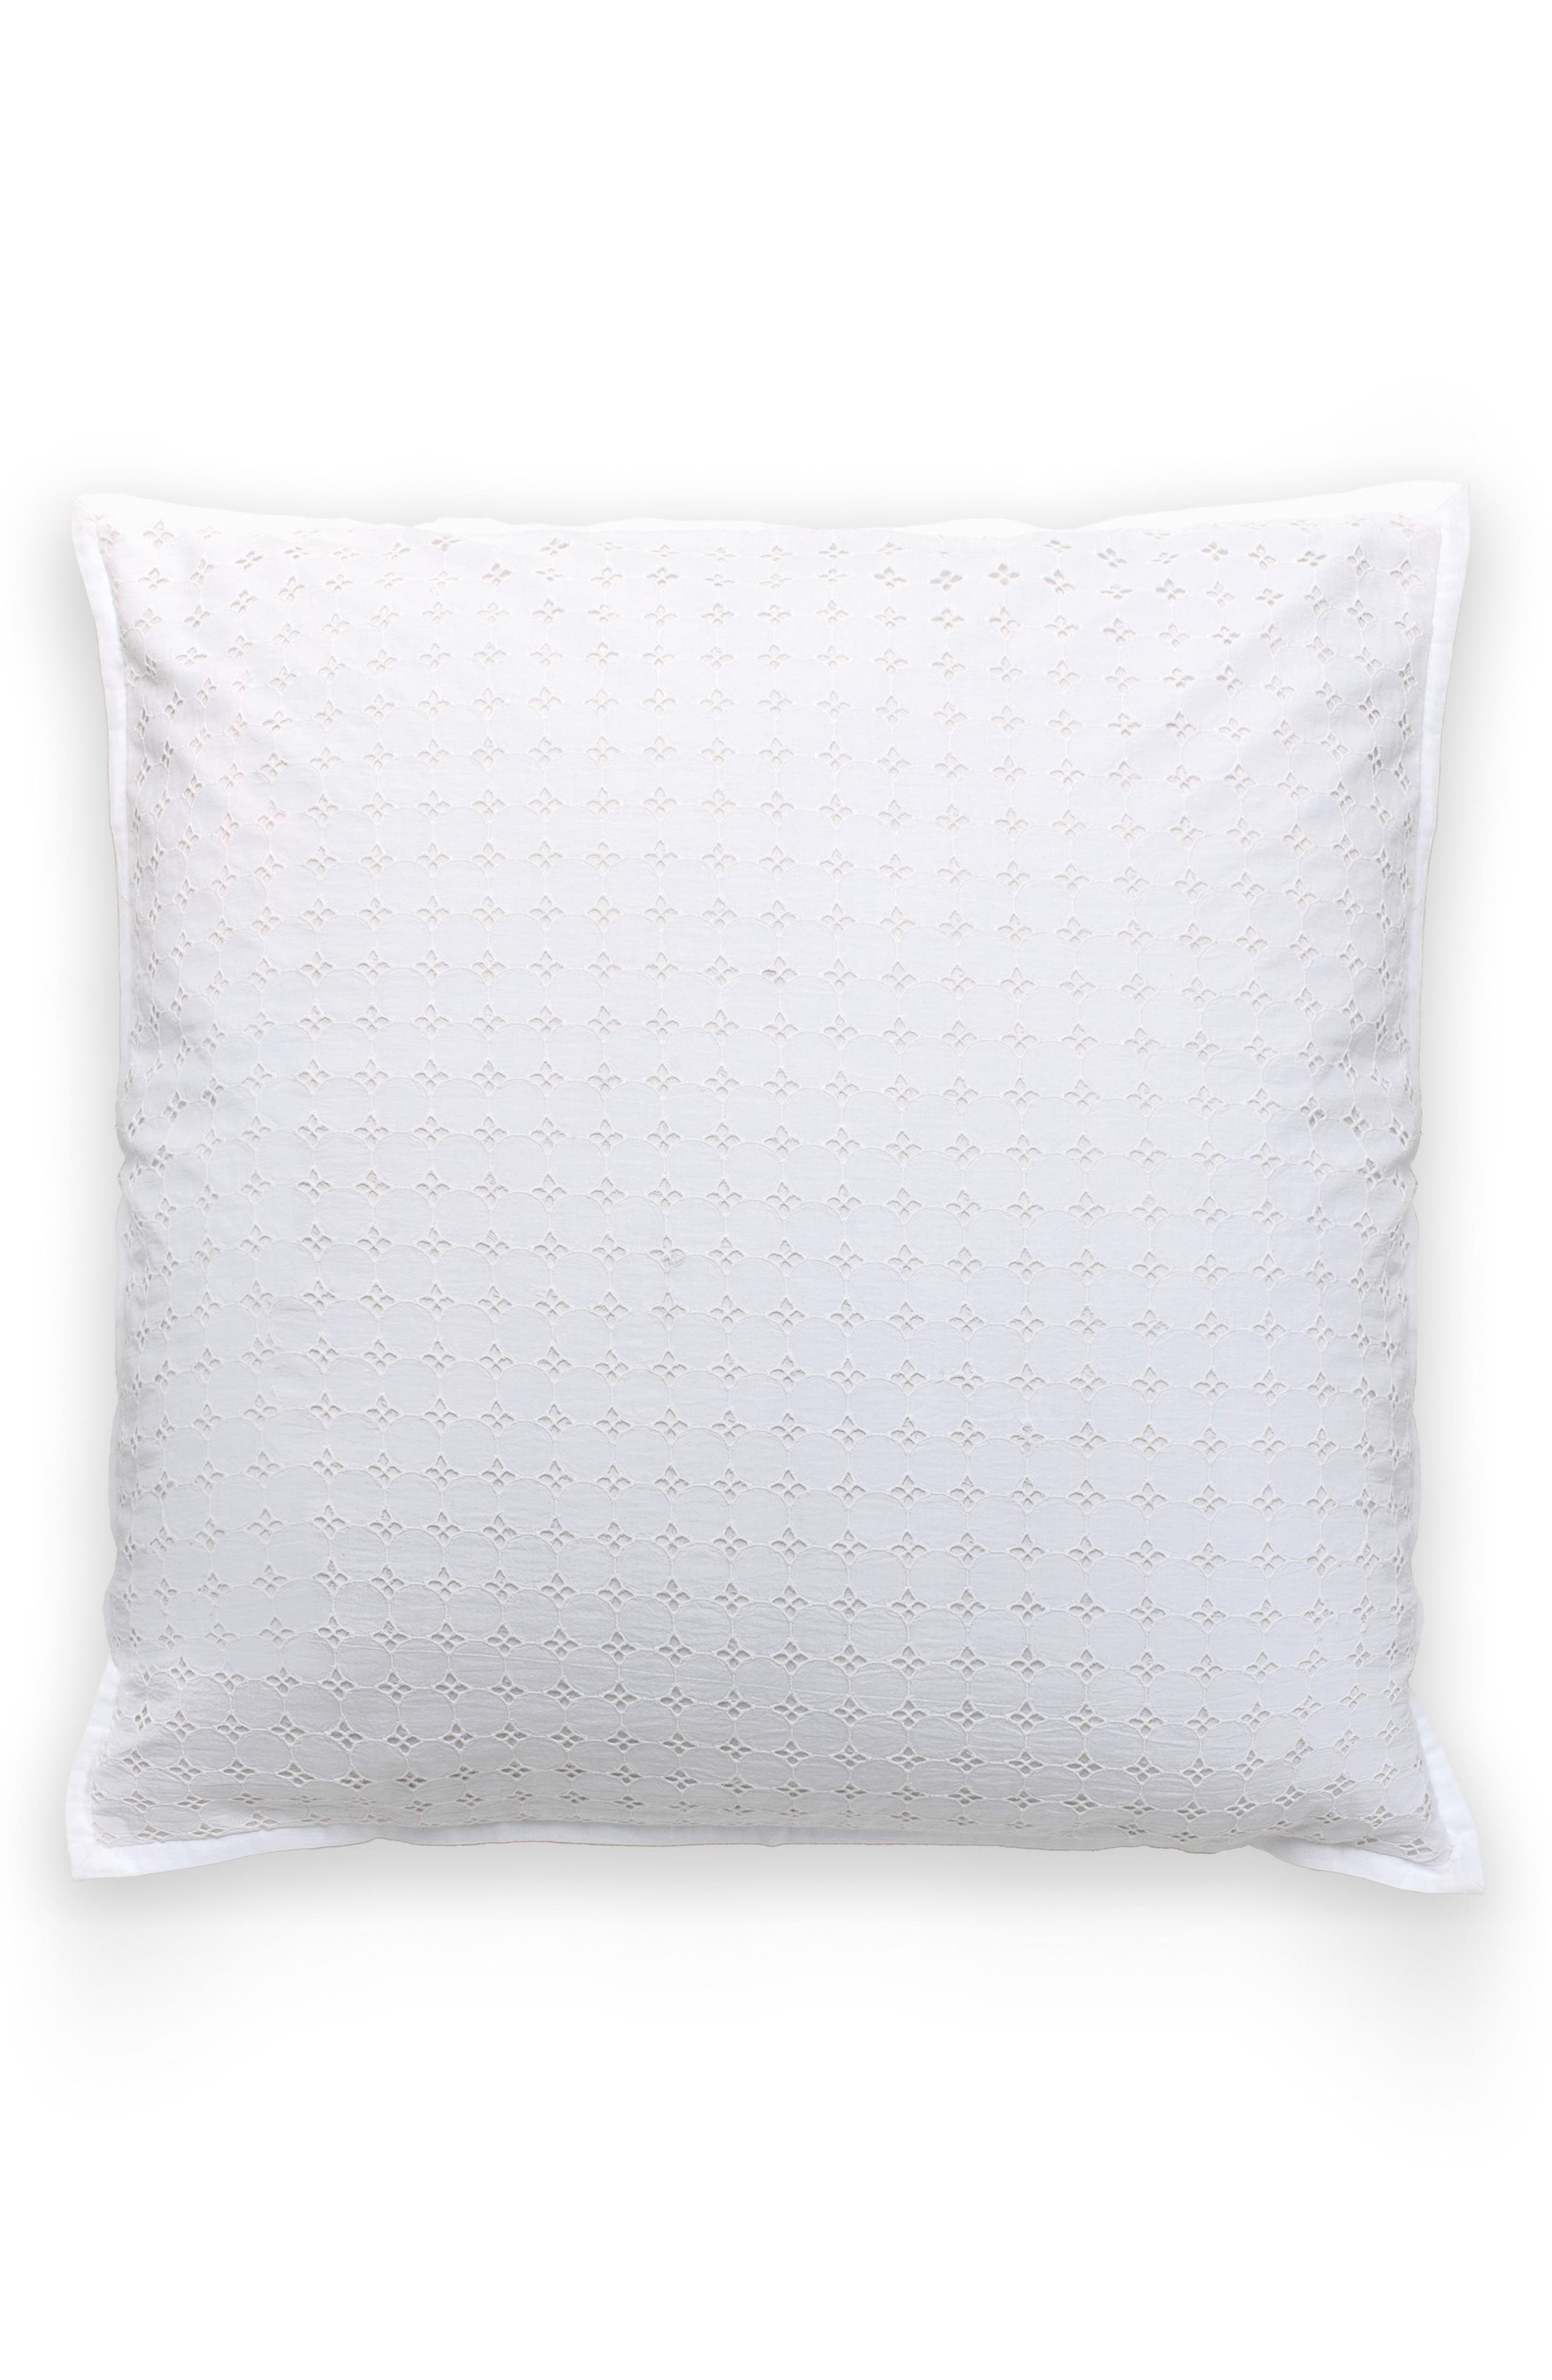 Alternate Image 1 Selected - kate spade new york dot eyelet euro sham